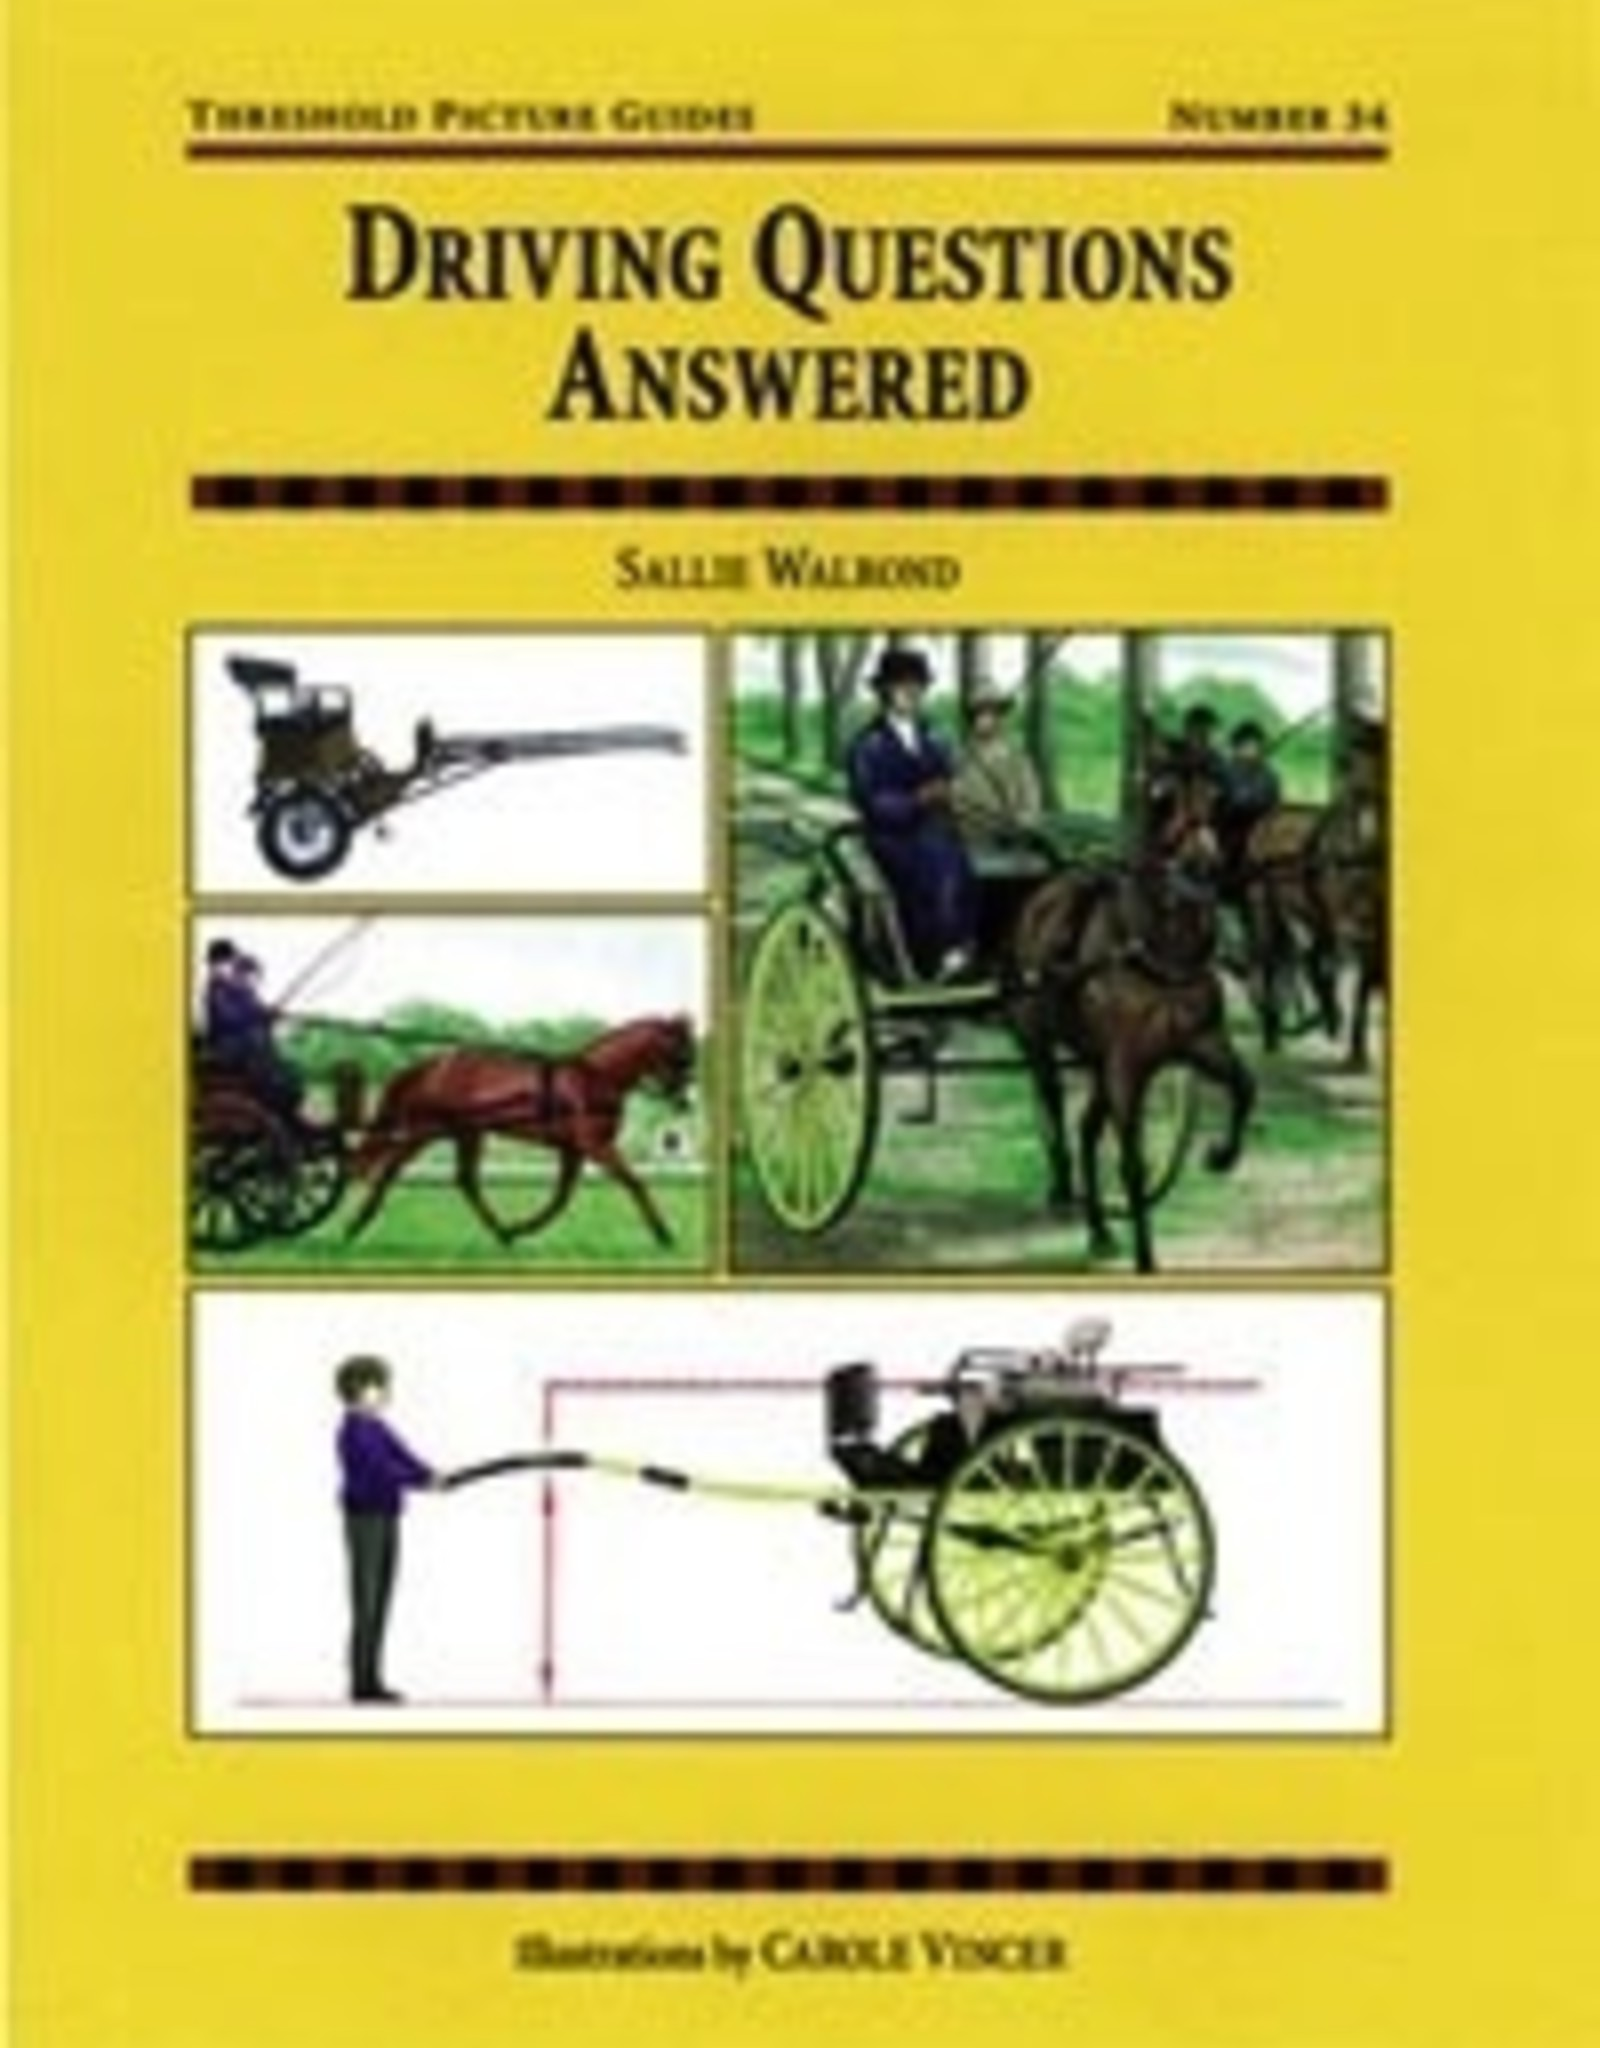 Driving Questions Answered